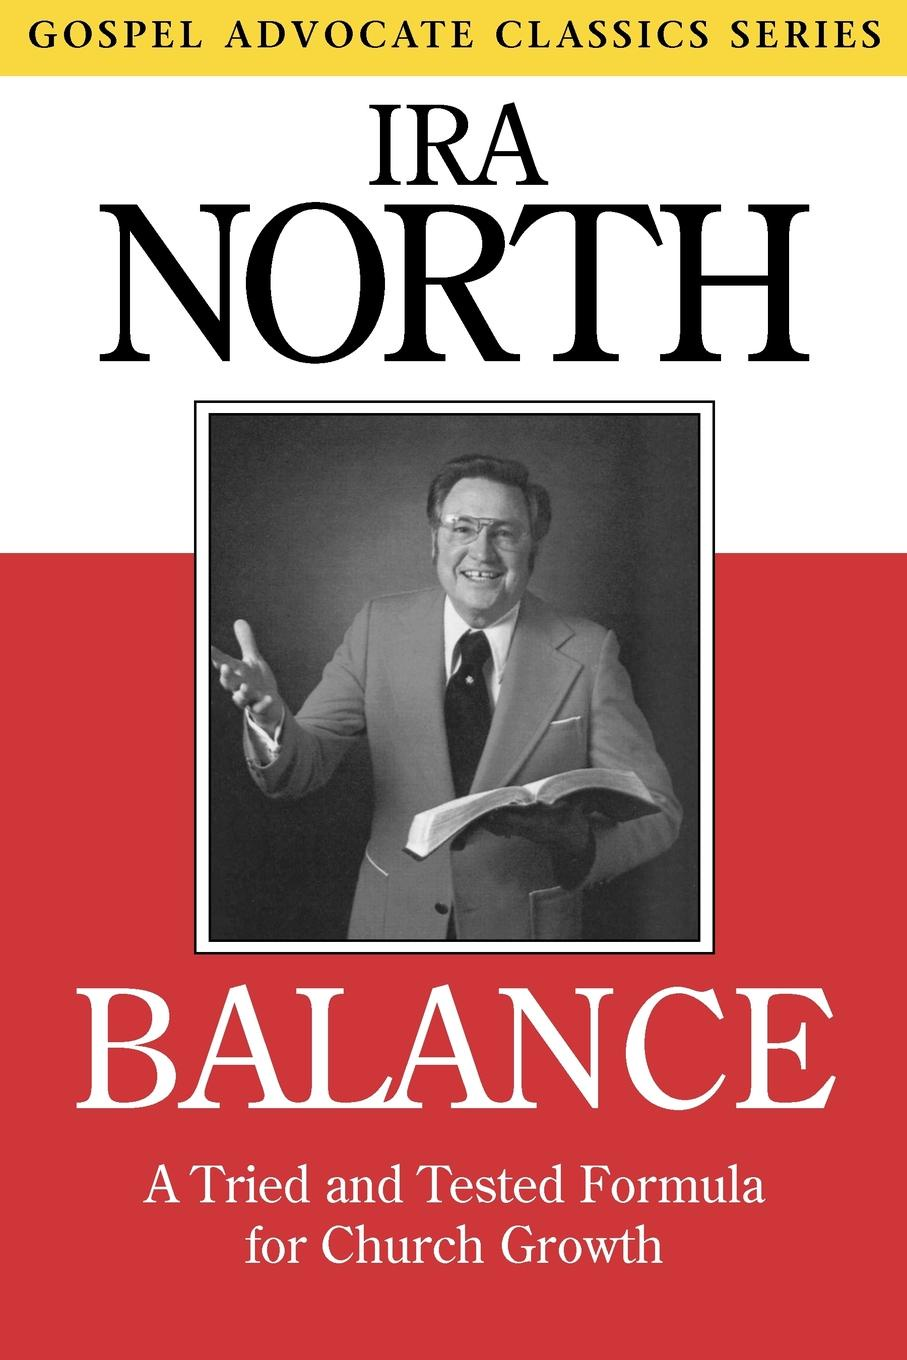 Ira North Balance. A Tried and Tested Formula for Church Growth